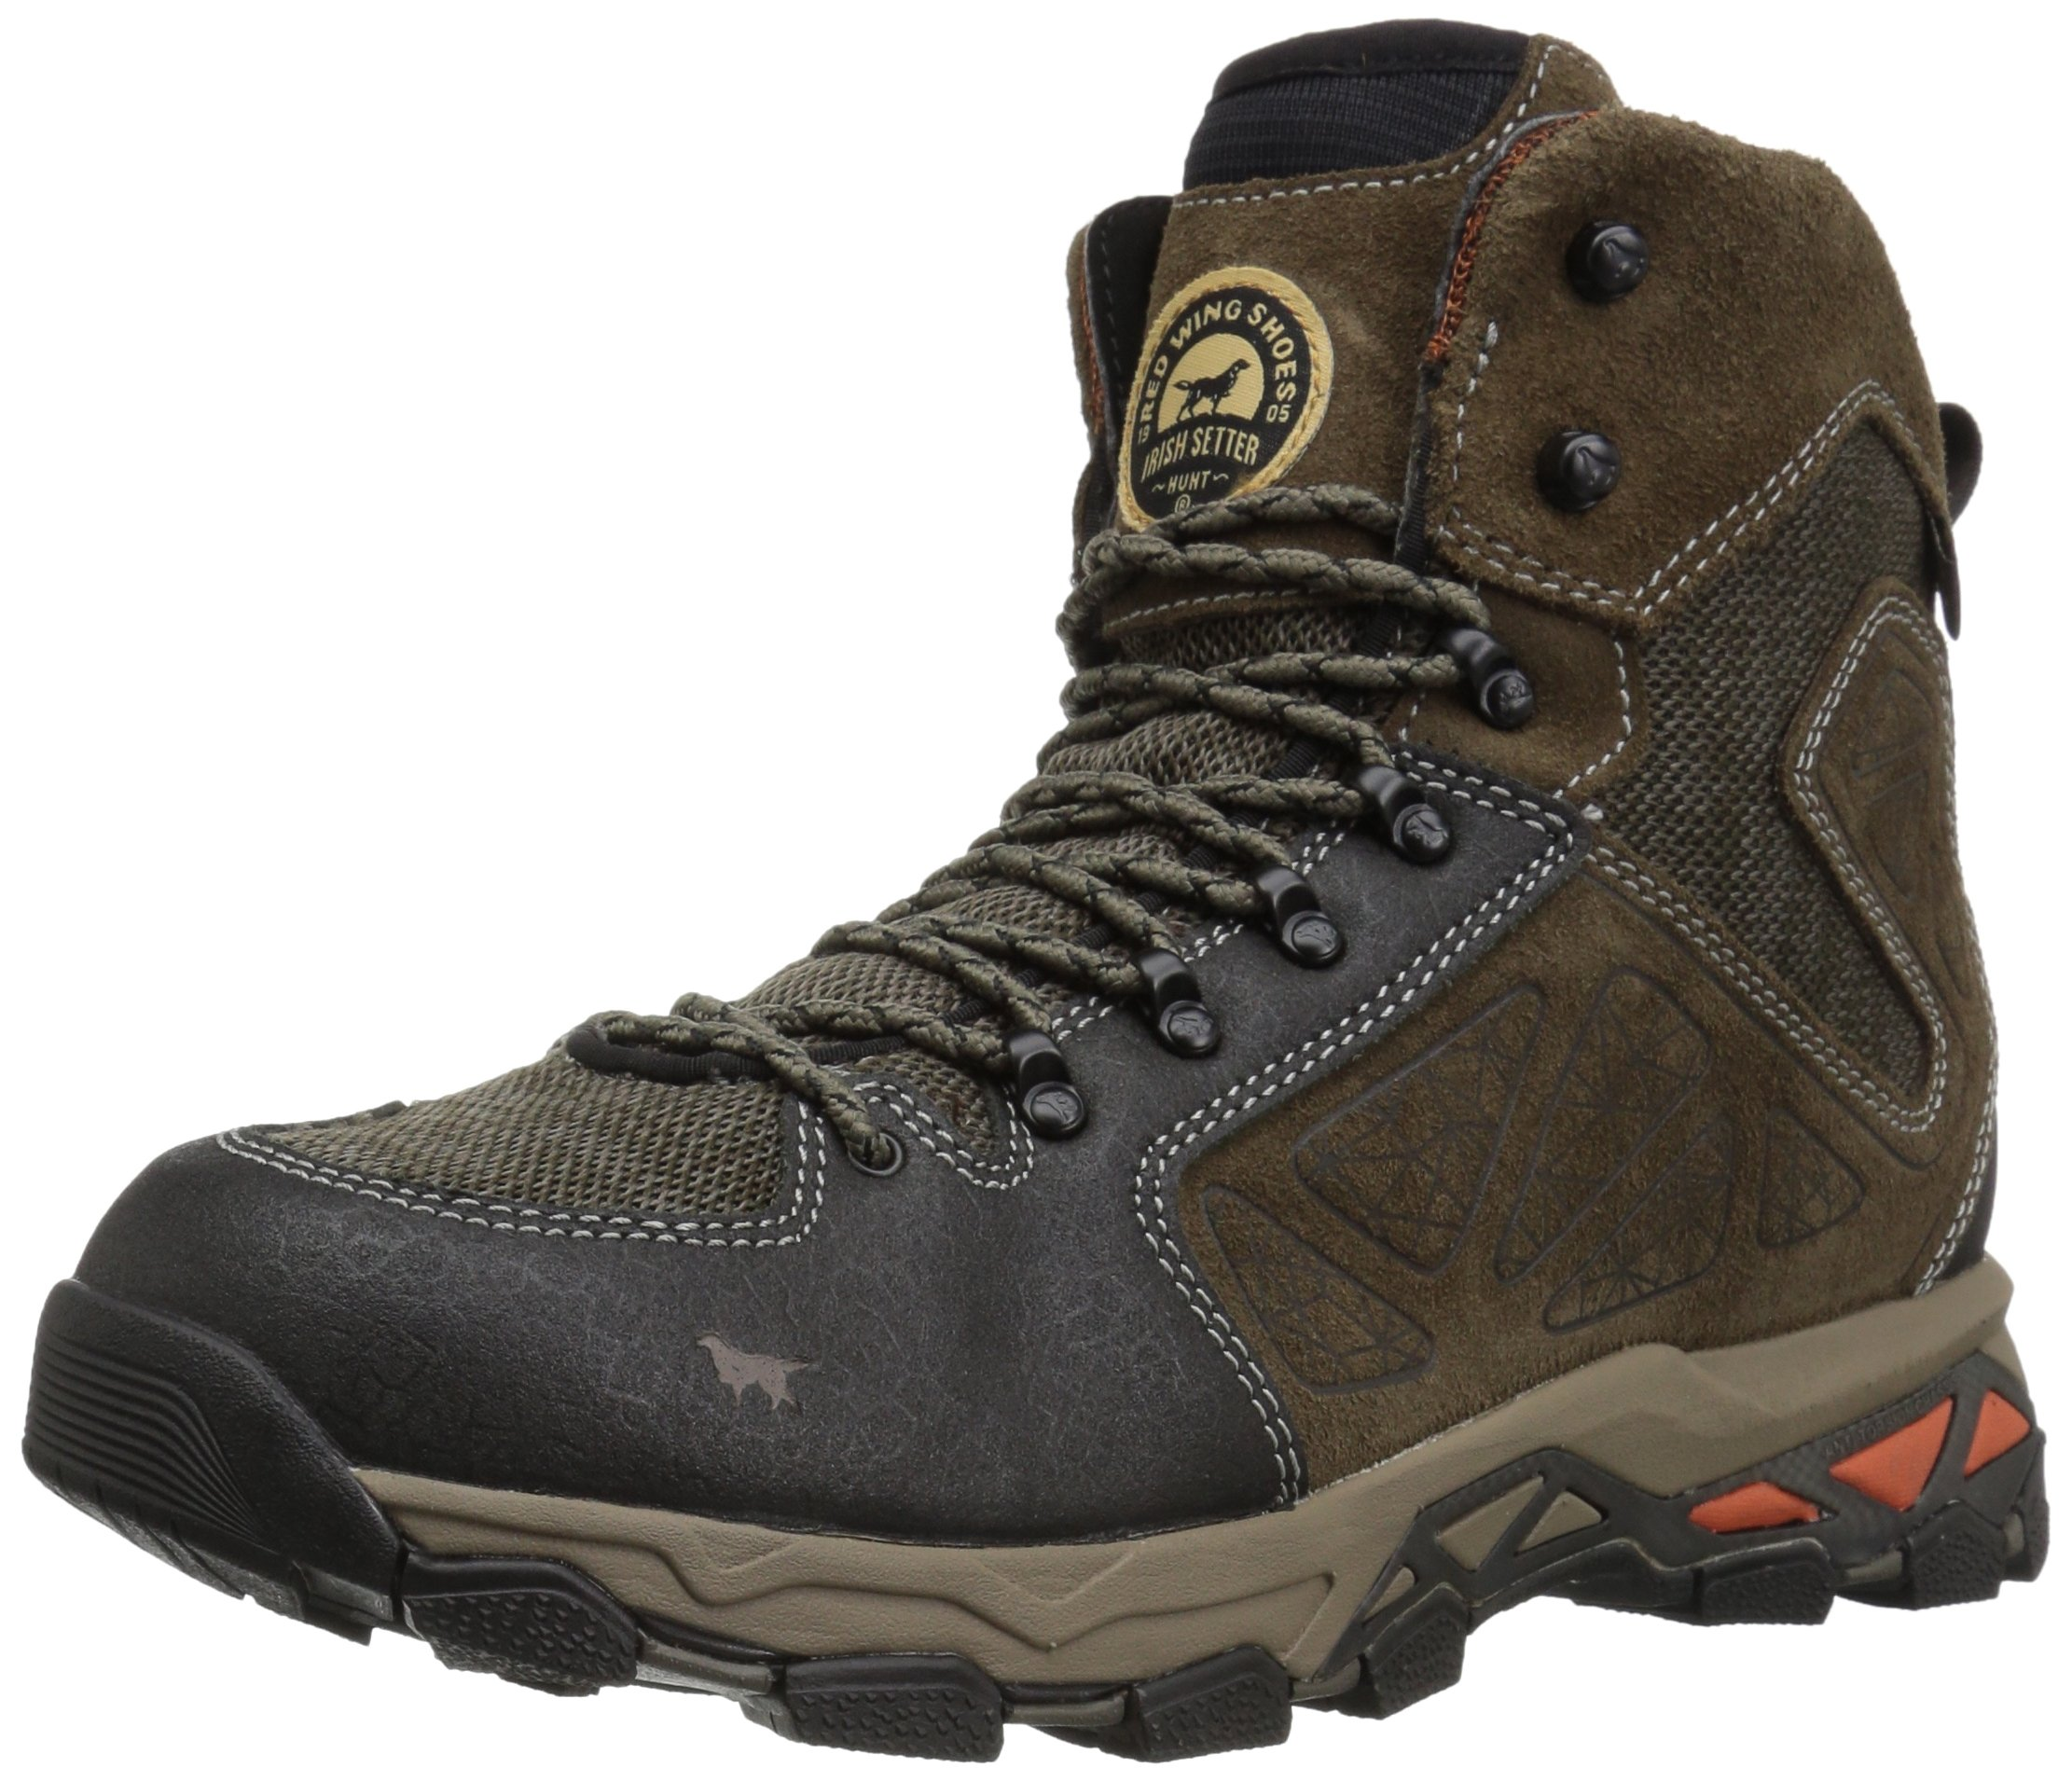 Irish Setter Men's Ravine-2880 Hunting Shoes, Gray/Black, 8 D US